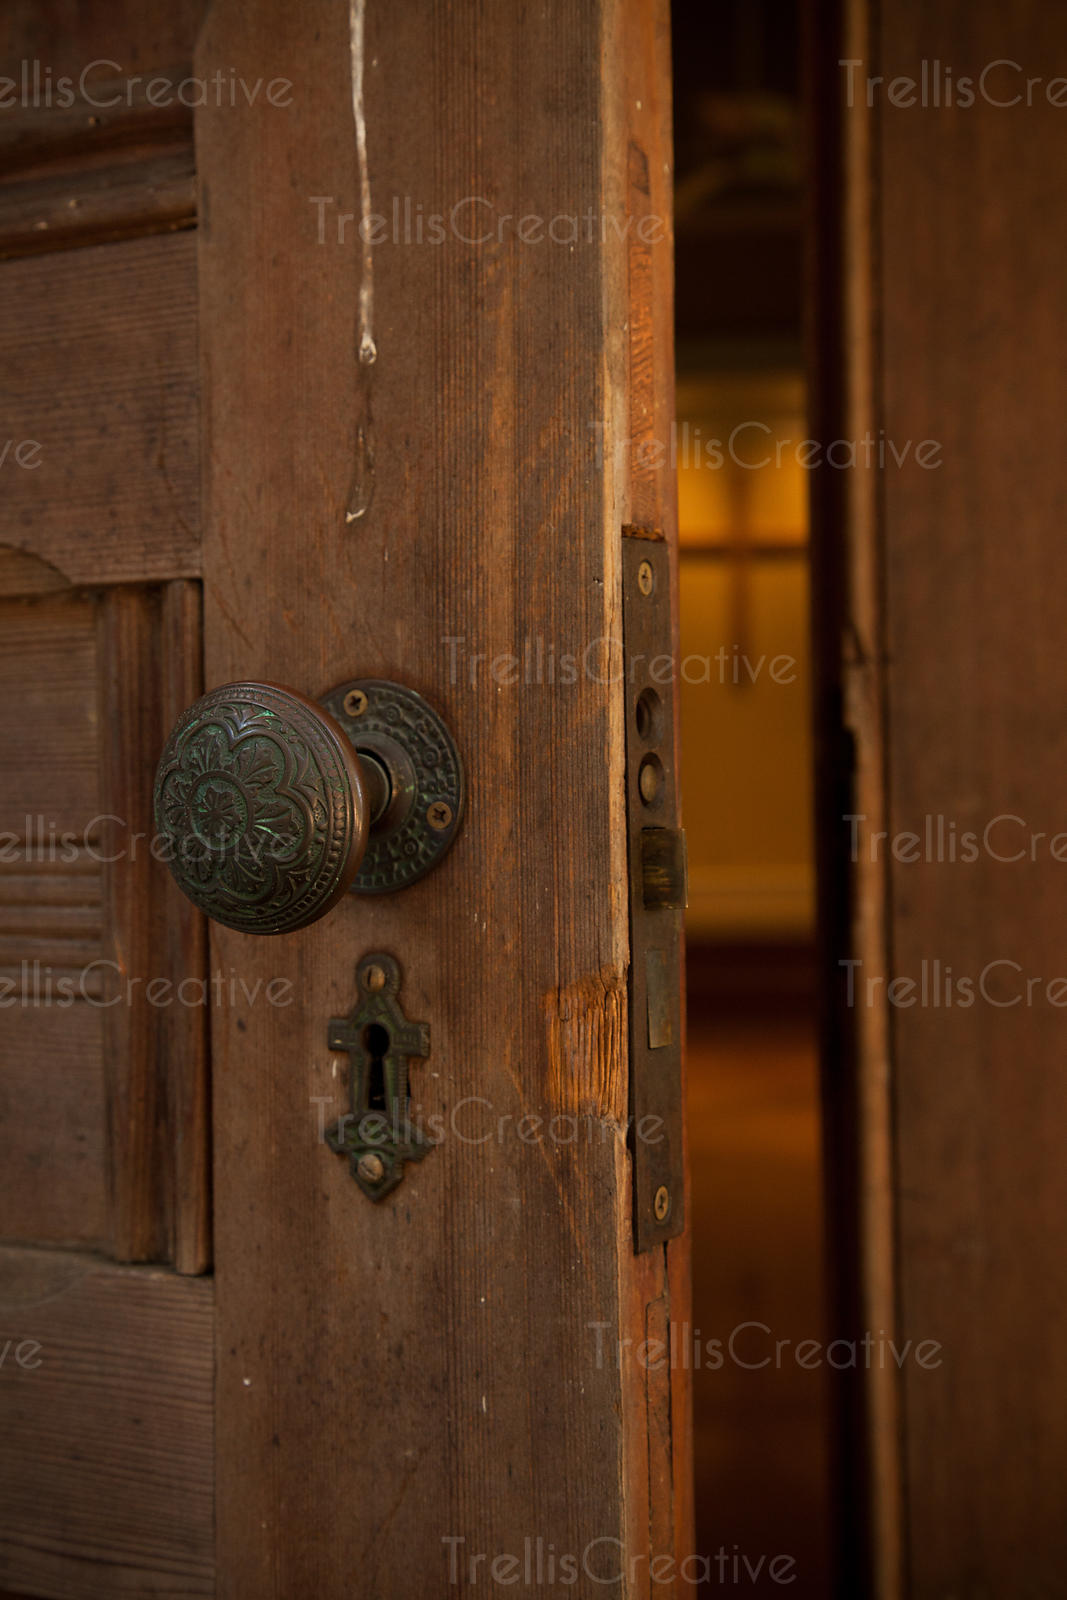 Old ornate doorknob and keyhole on a wooden door